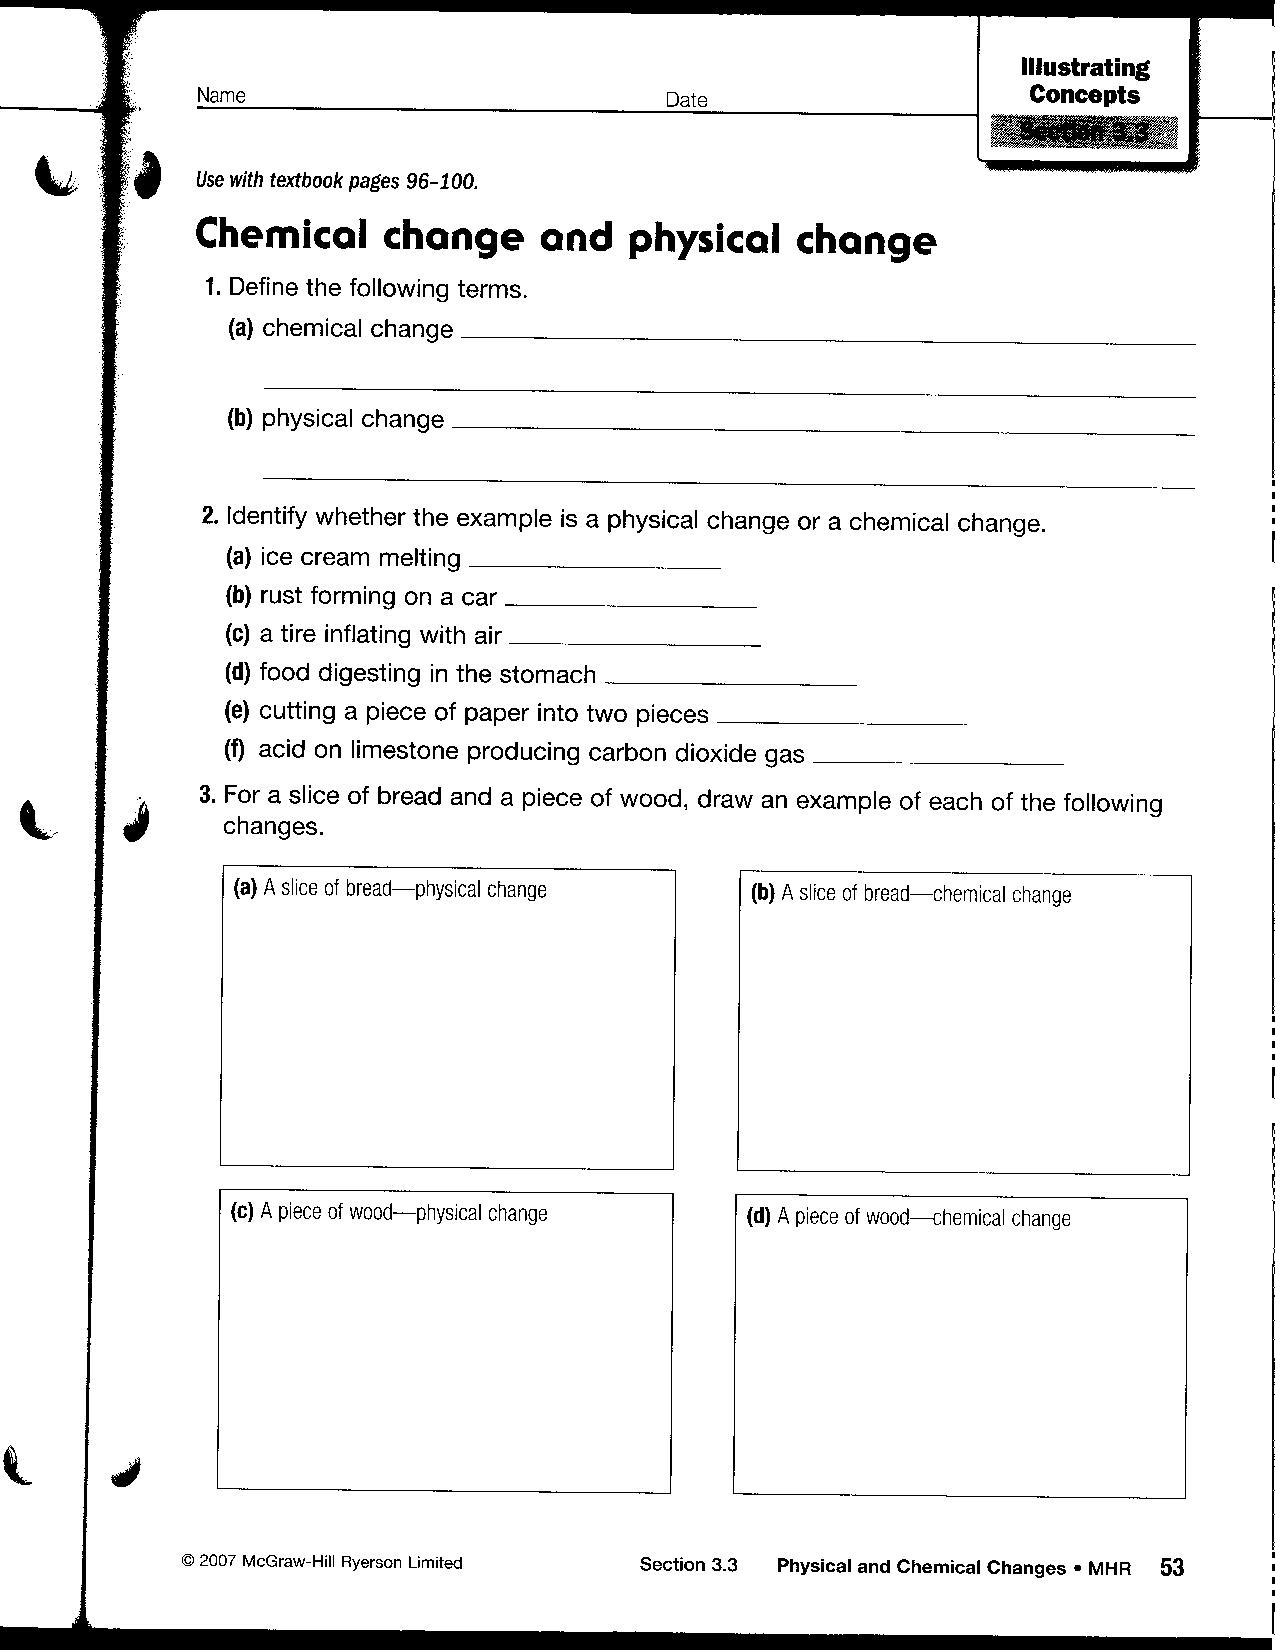 Chemical and Physical Changes Worksheet http://aschreiner.edublogs.org/science-9/science-9-material/